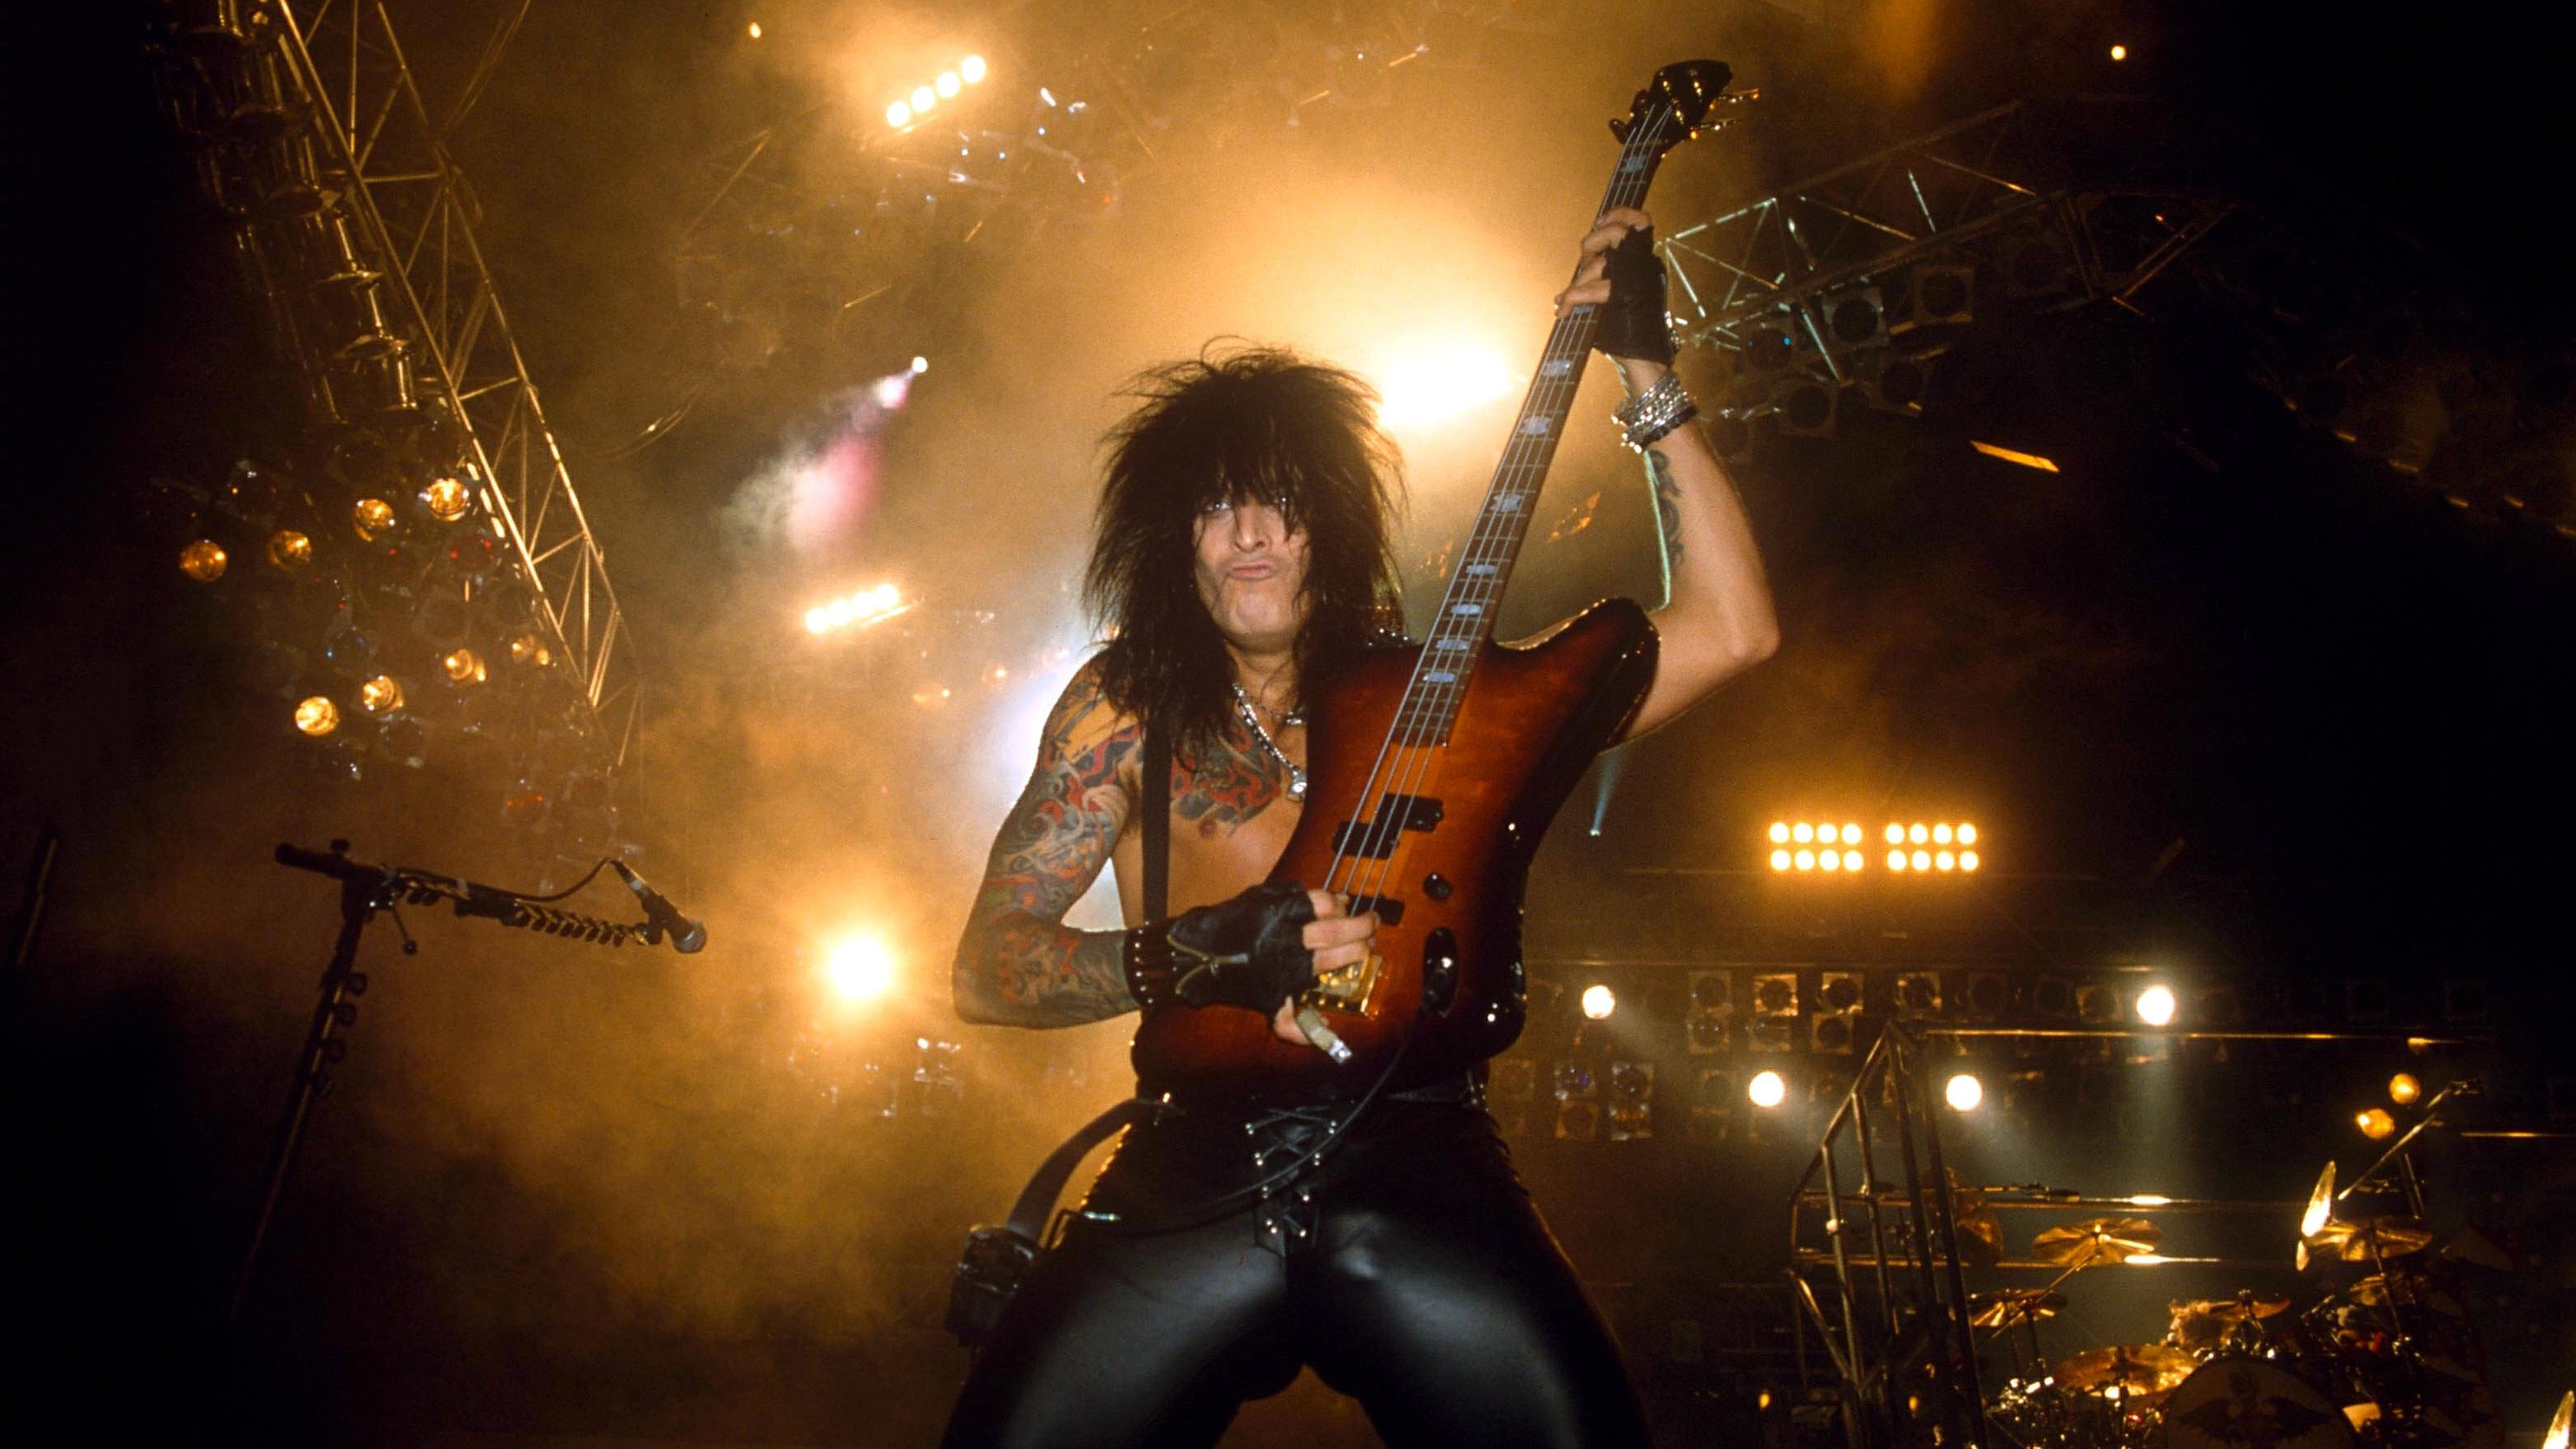 Nikki Sixx on 'Girls Girls Girls'